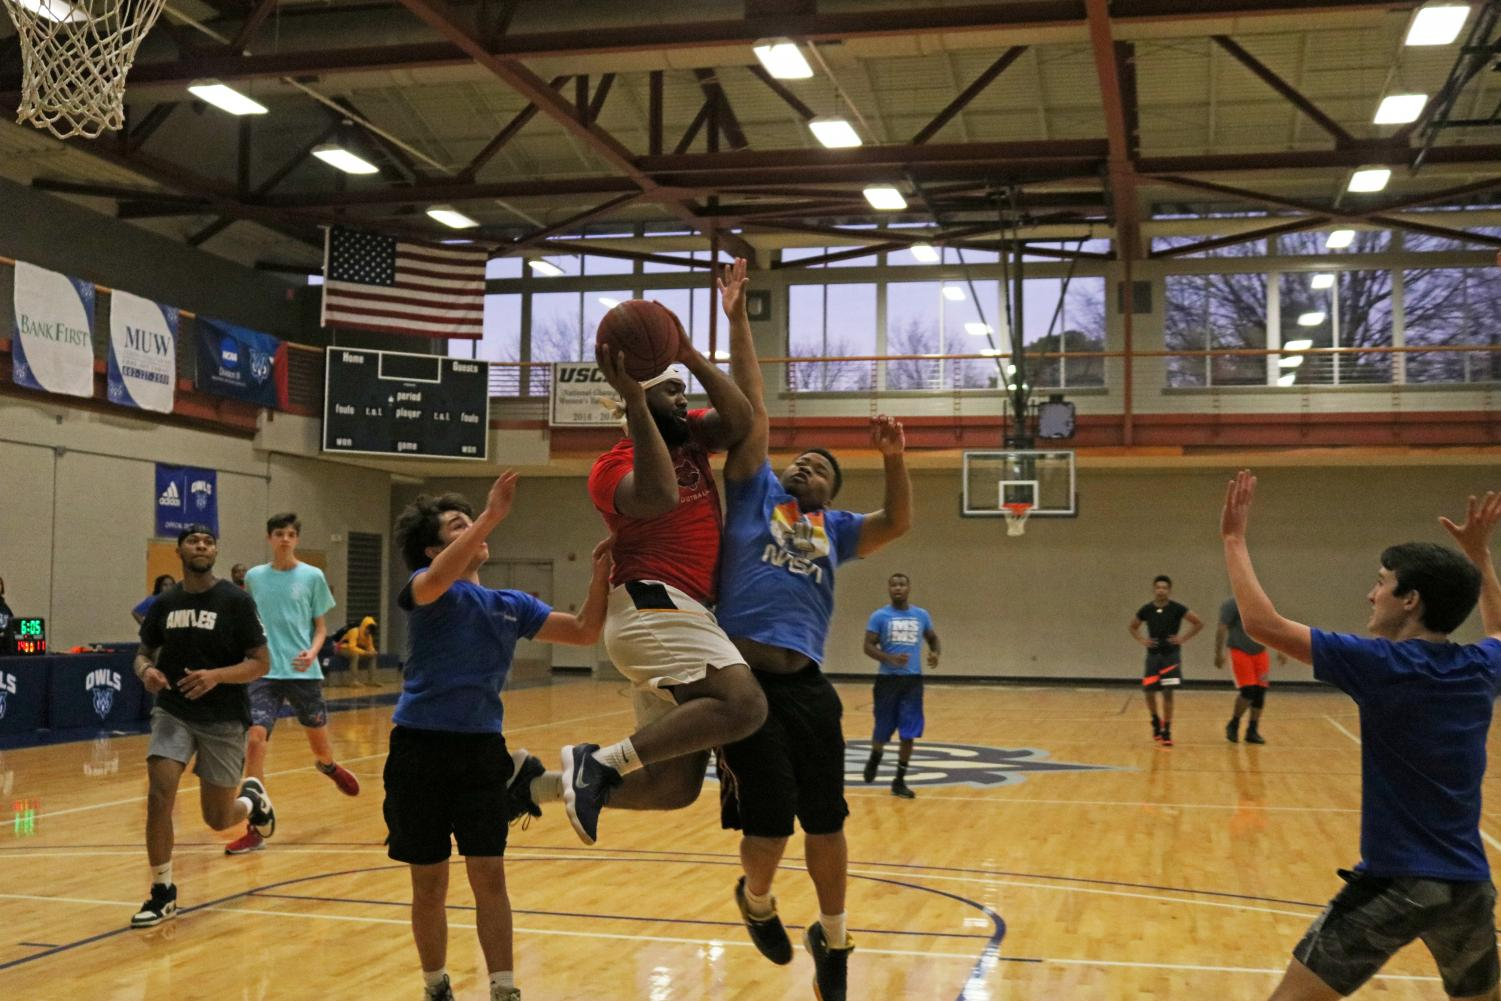 The students vs. faculty basketball game ended with the staff winning 45-35.